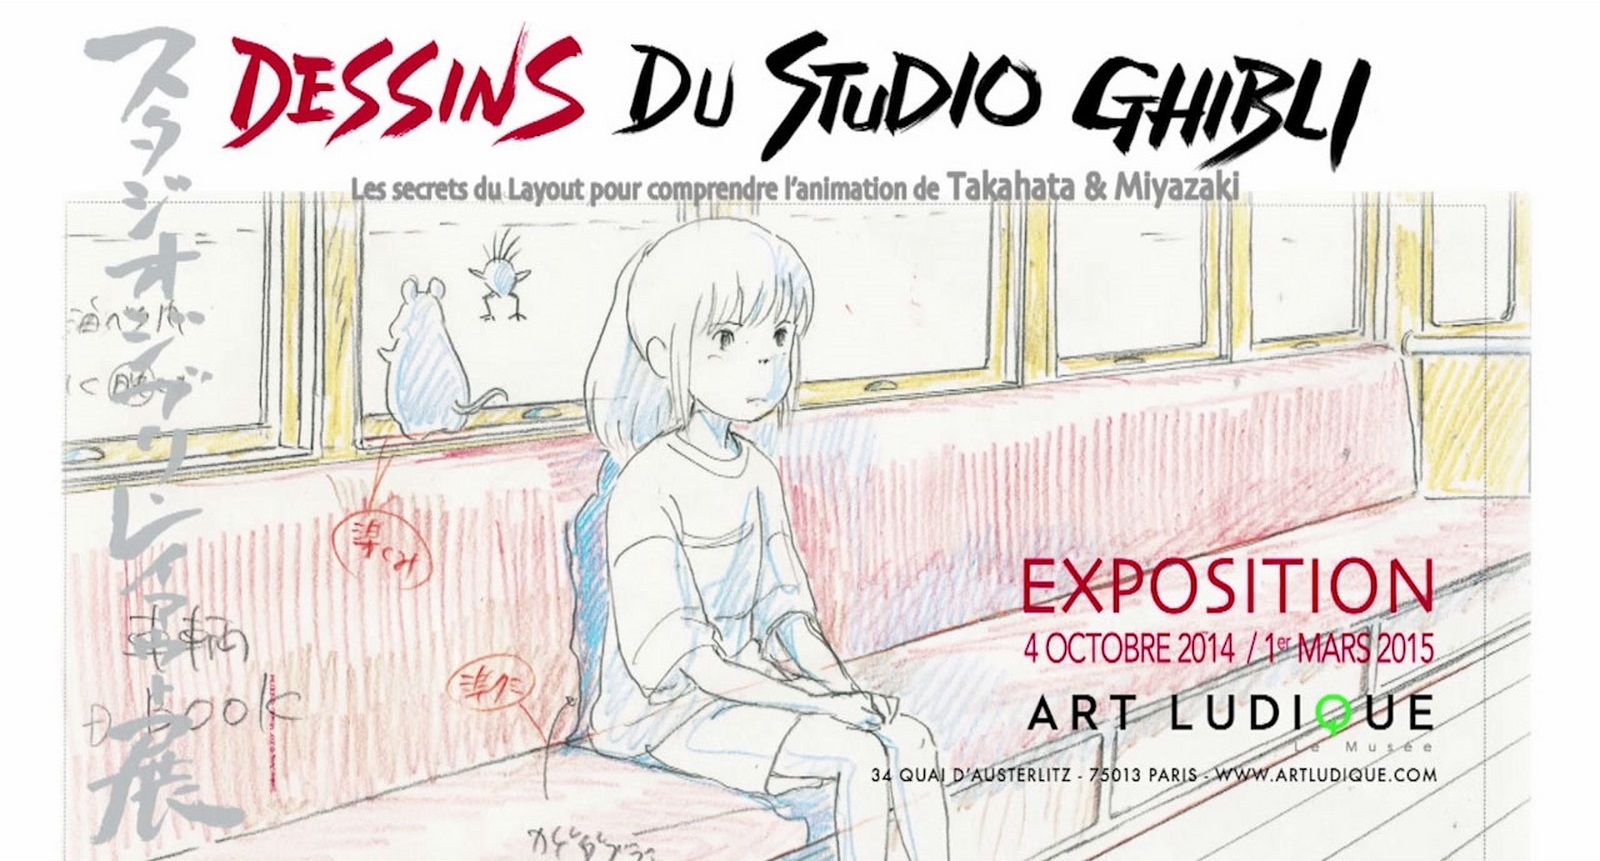 [Critique Expo] Les dessins du Studio Ghibli à l'Art Ludique